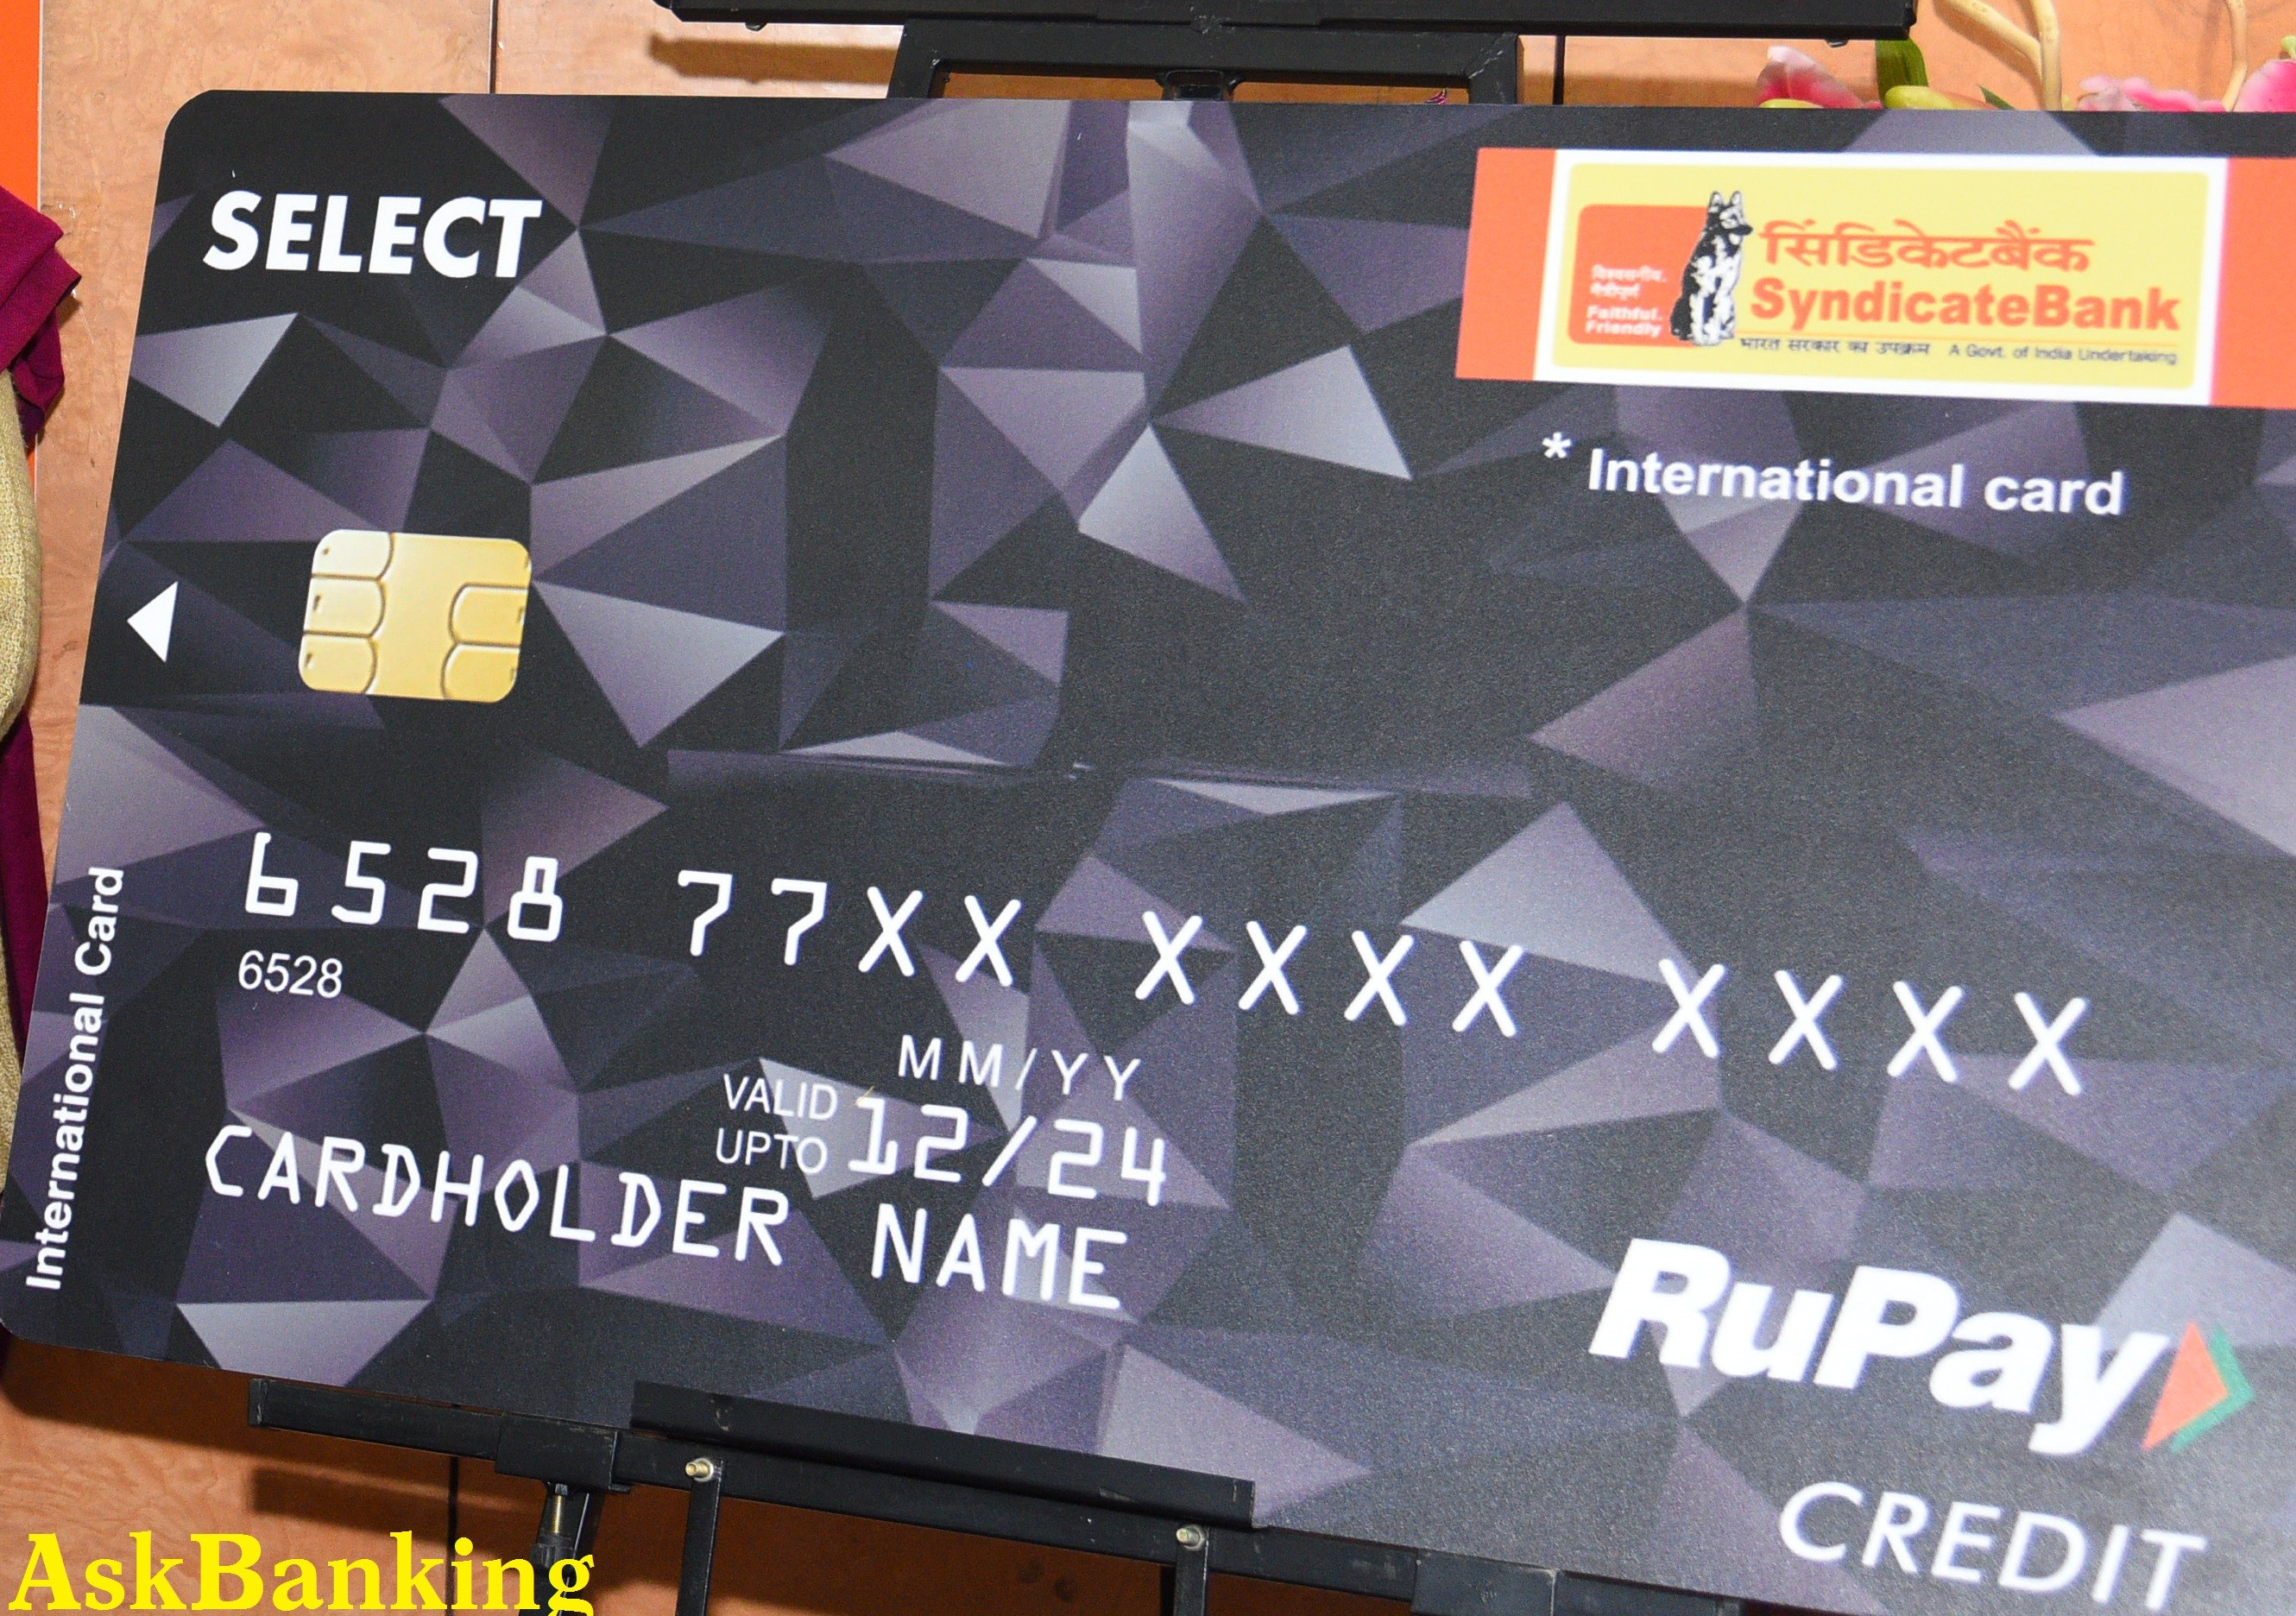 Syndciatebank-Rupay-select-credit-card-offers